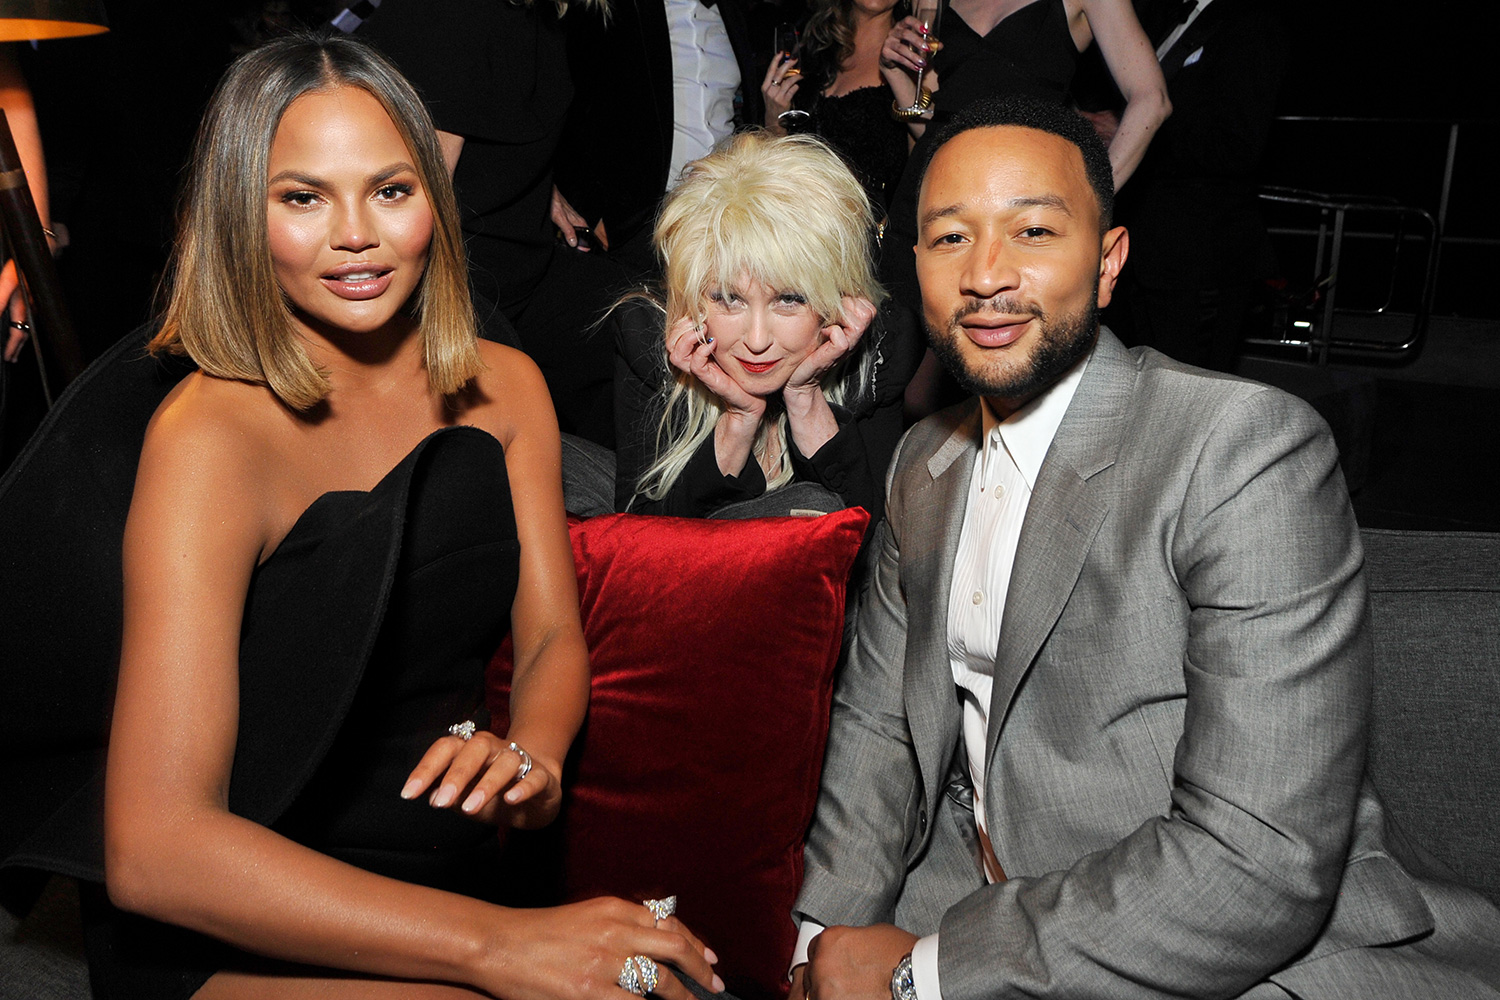 Chrissy Teigen, Cyndi Lauper, and John Legend